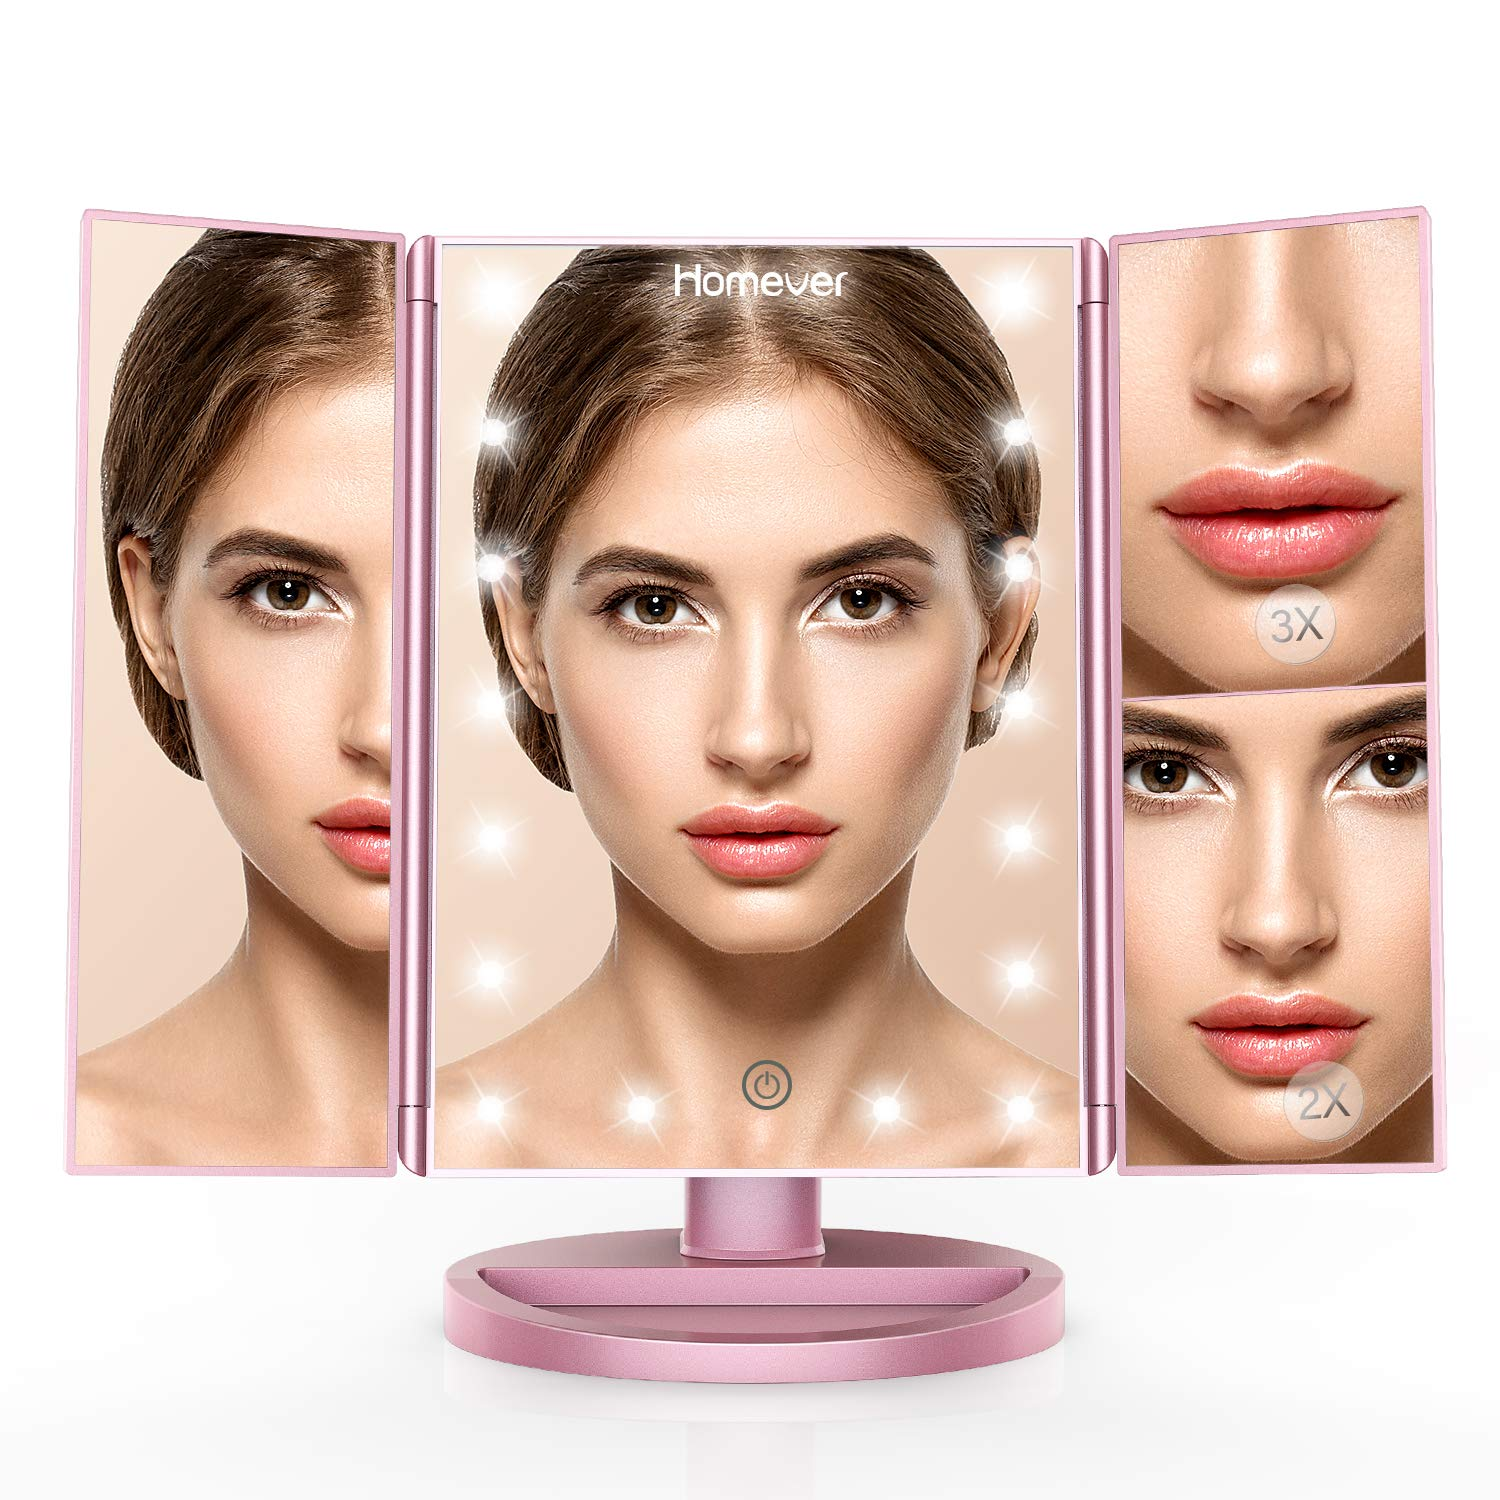 Homever Makeup Vanity Mirror with 21 LED Lights, 3X/2X Magnifying Lighted Makeup Mirror with Touch-Screen, 180° Free Rotation, Dual Power Supply, Upgrade in 2018 (Rose gold)